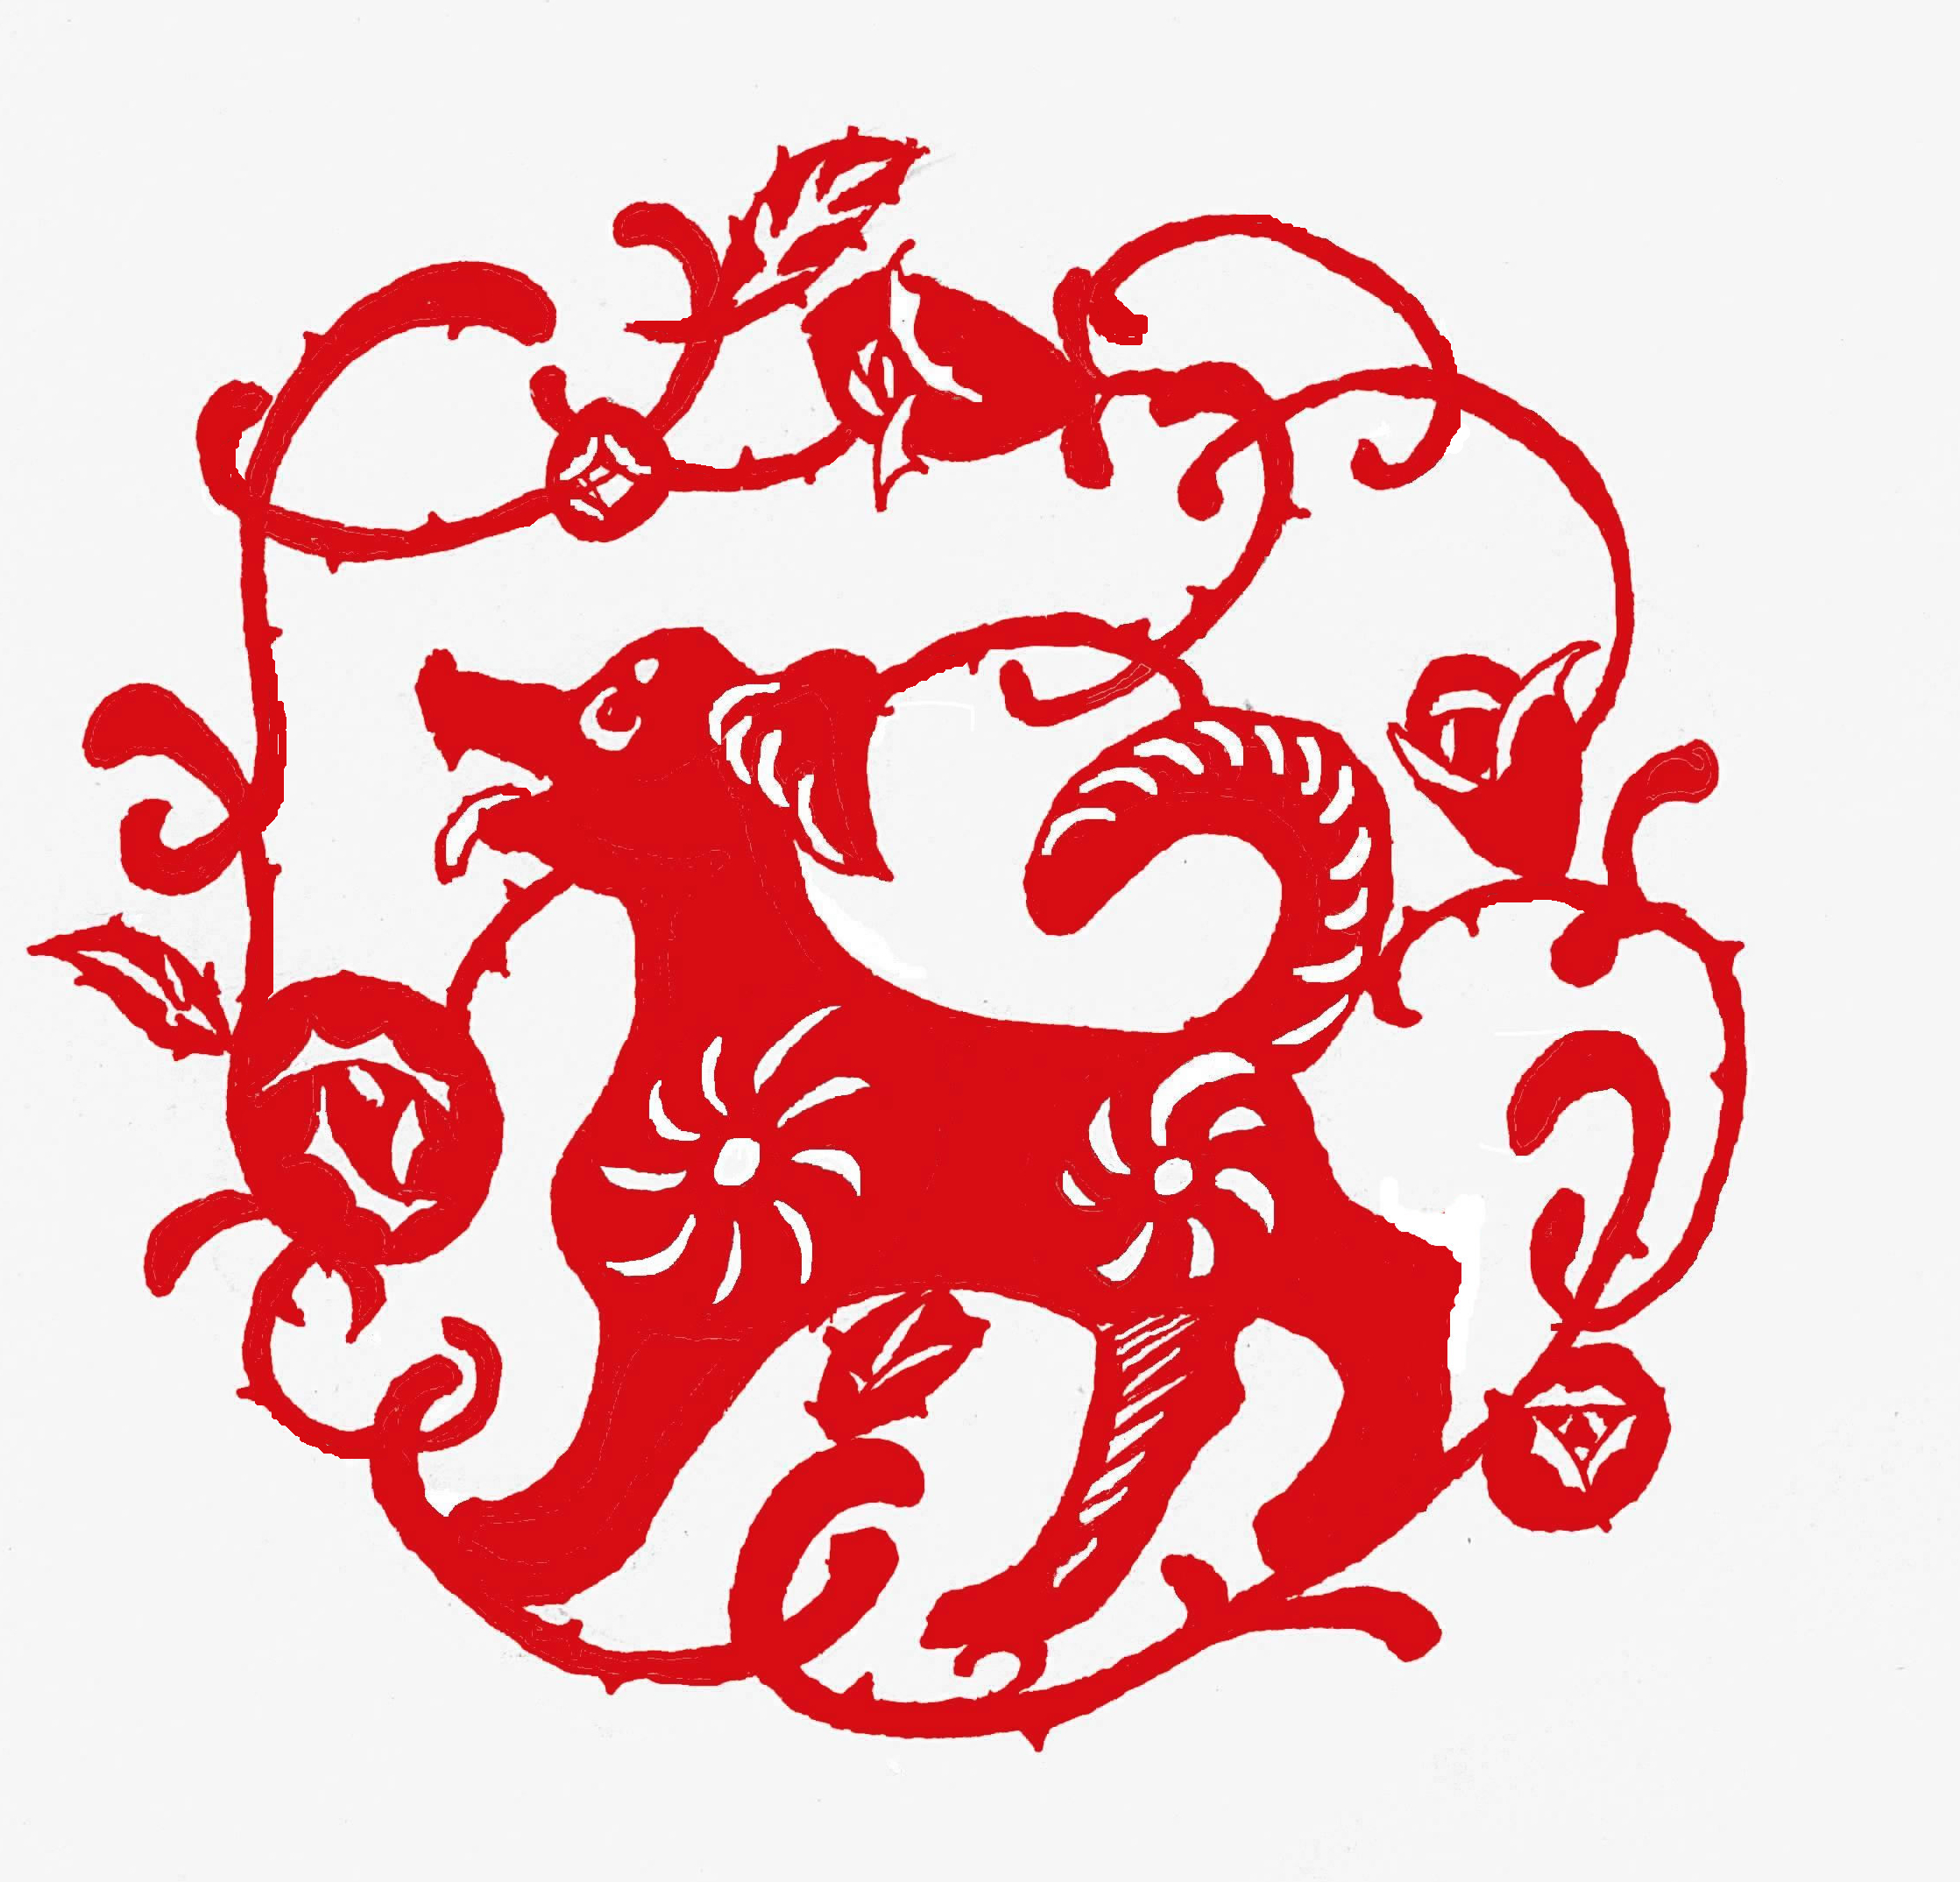 2018-year-of-the-dog-chinese-zodiac-underluckystars-night-sky